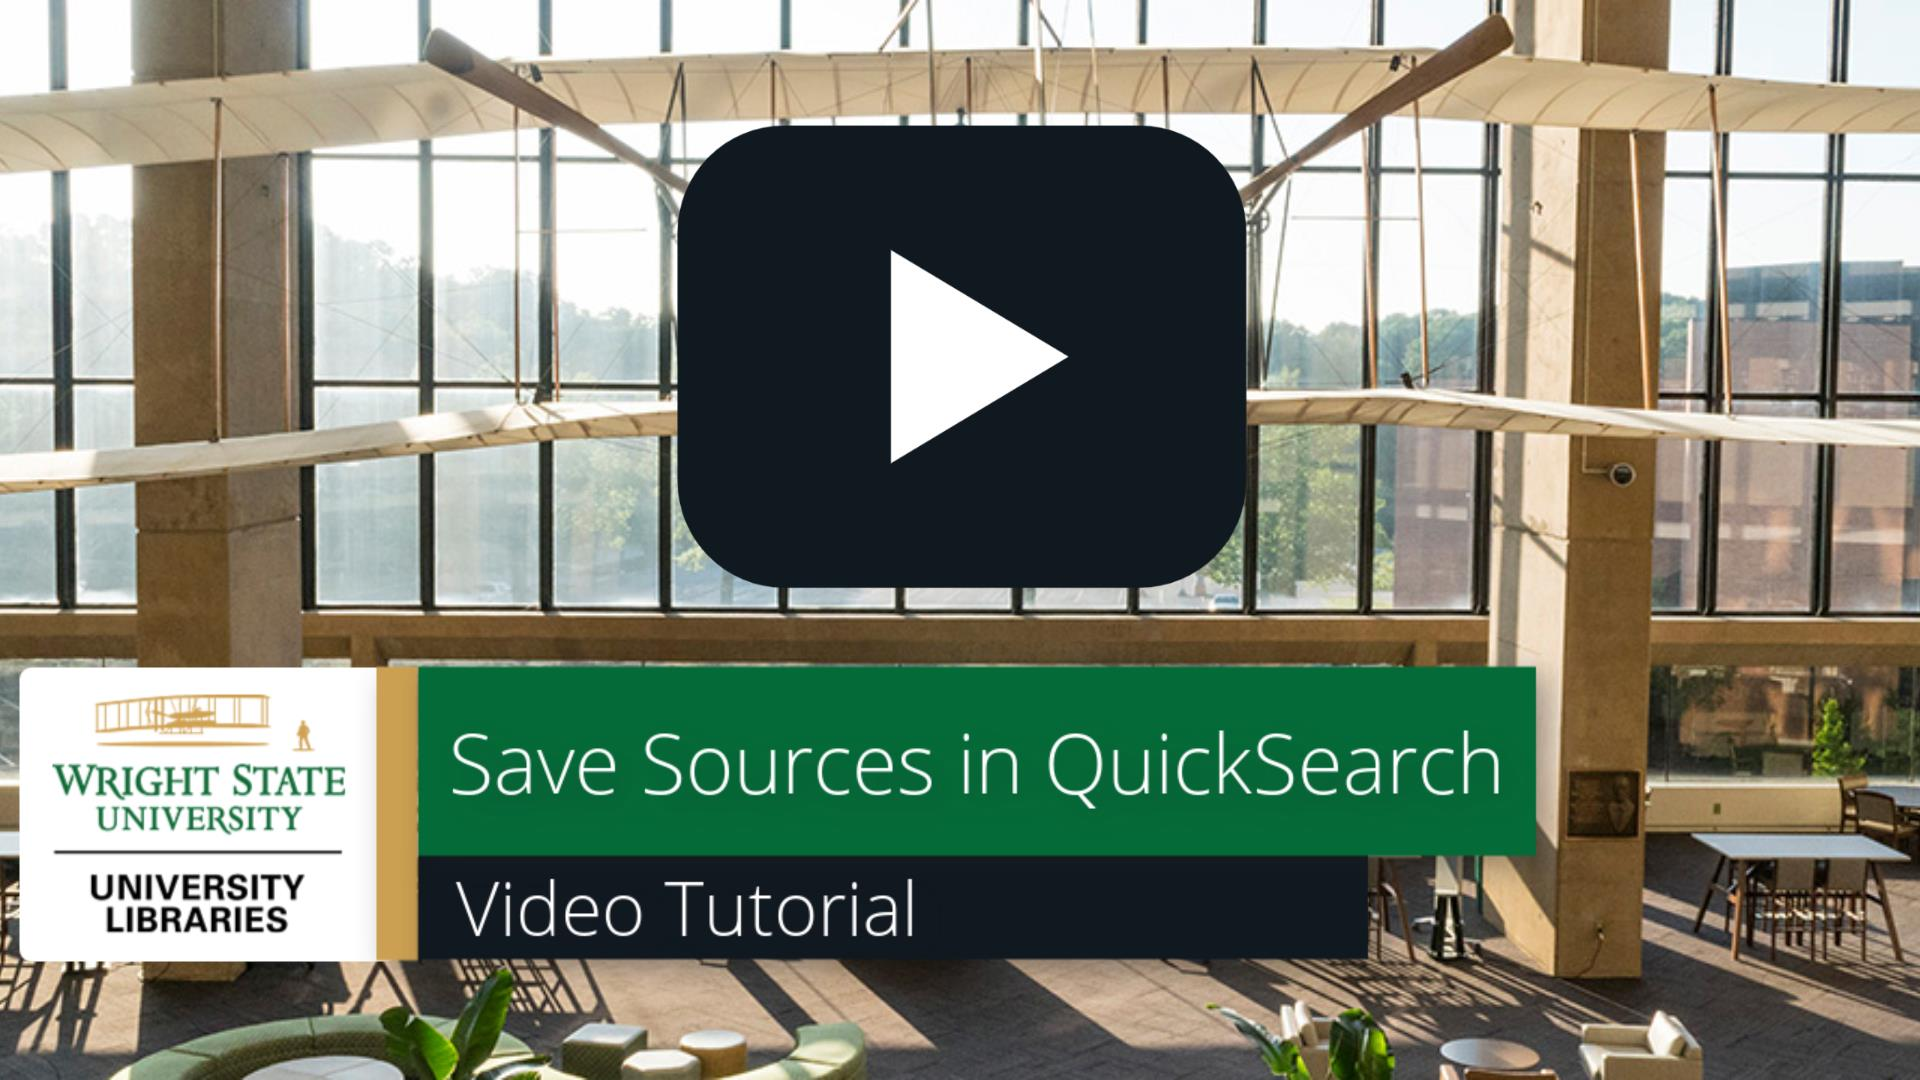 Save Sources in QuickSearch: Video Tutorial